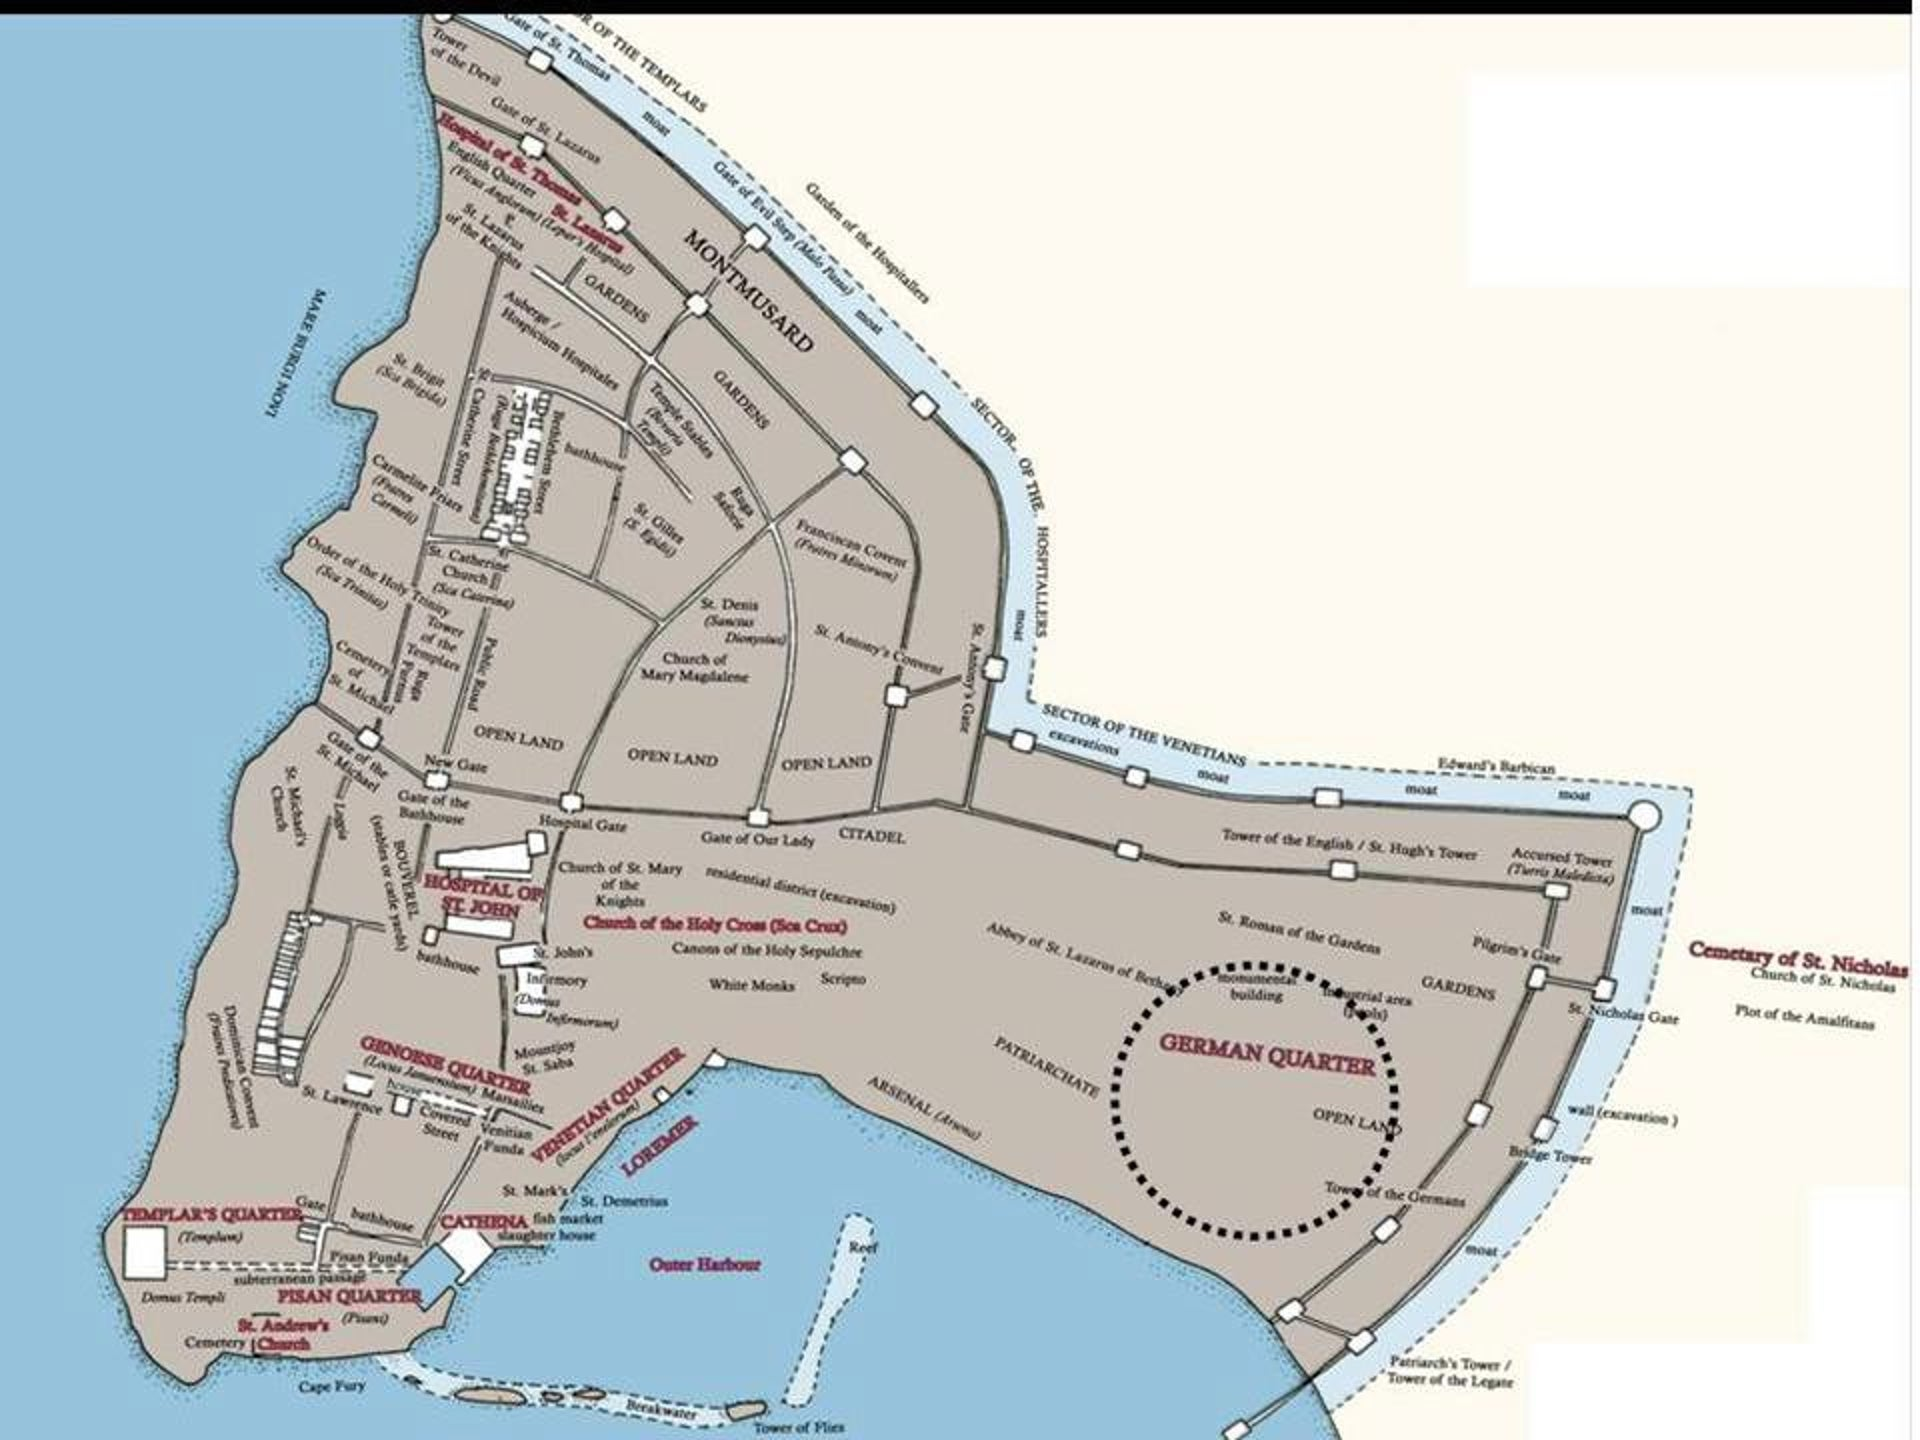 Map showing the boundaries of the crusader city and Teutonic Order quarters